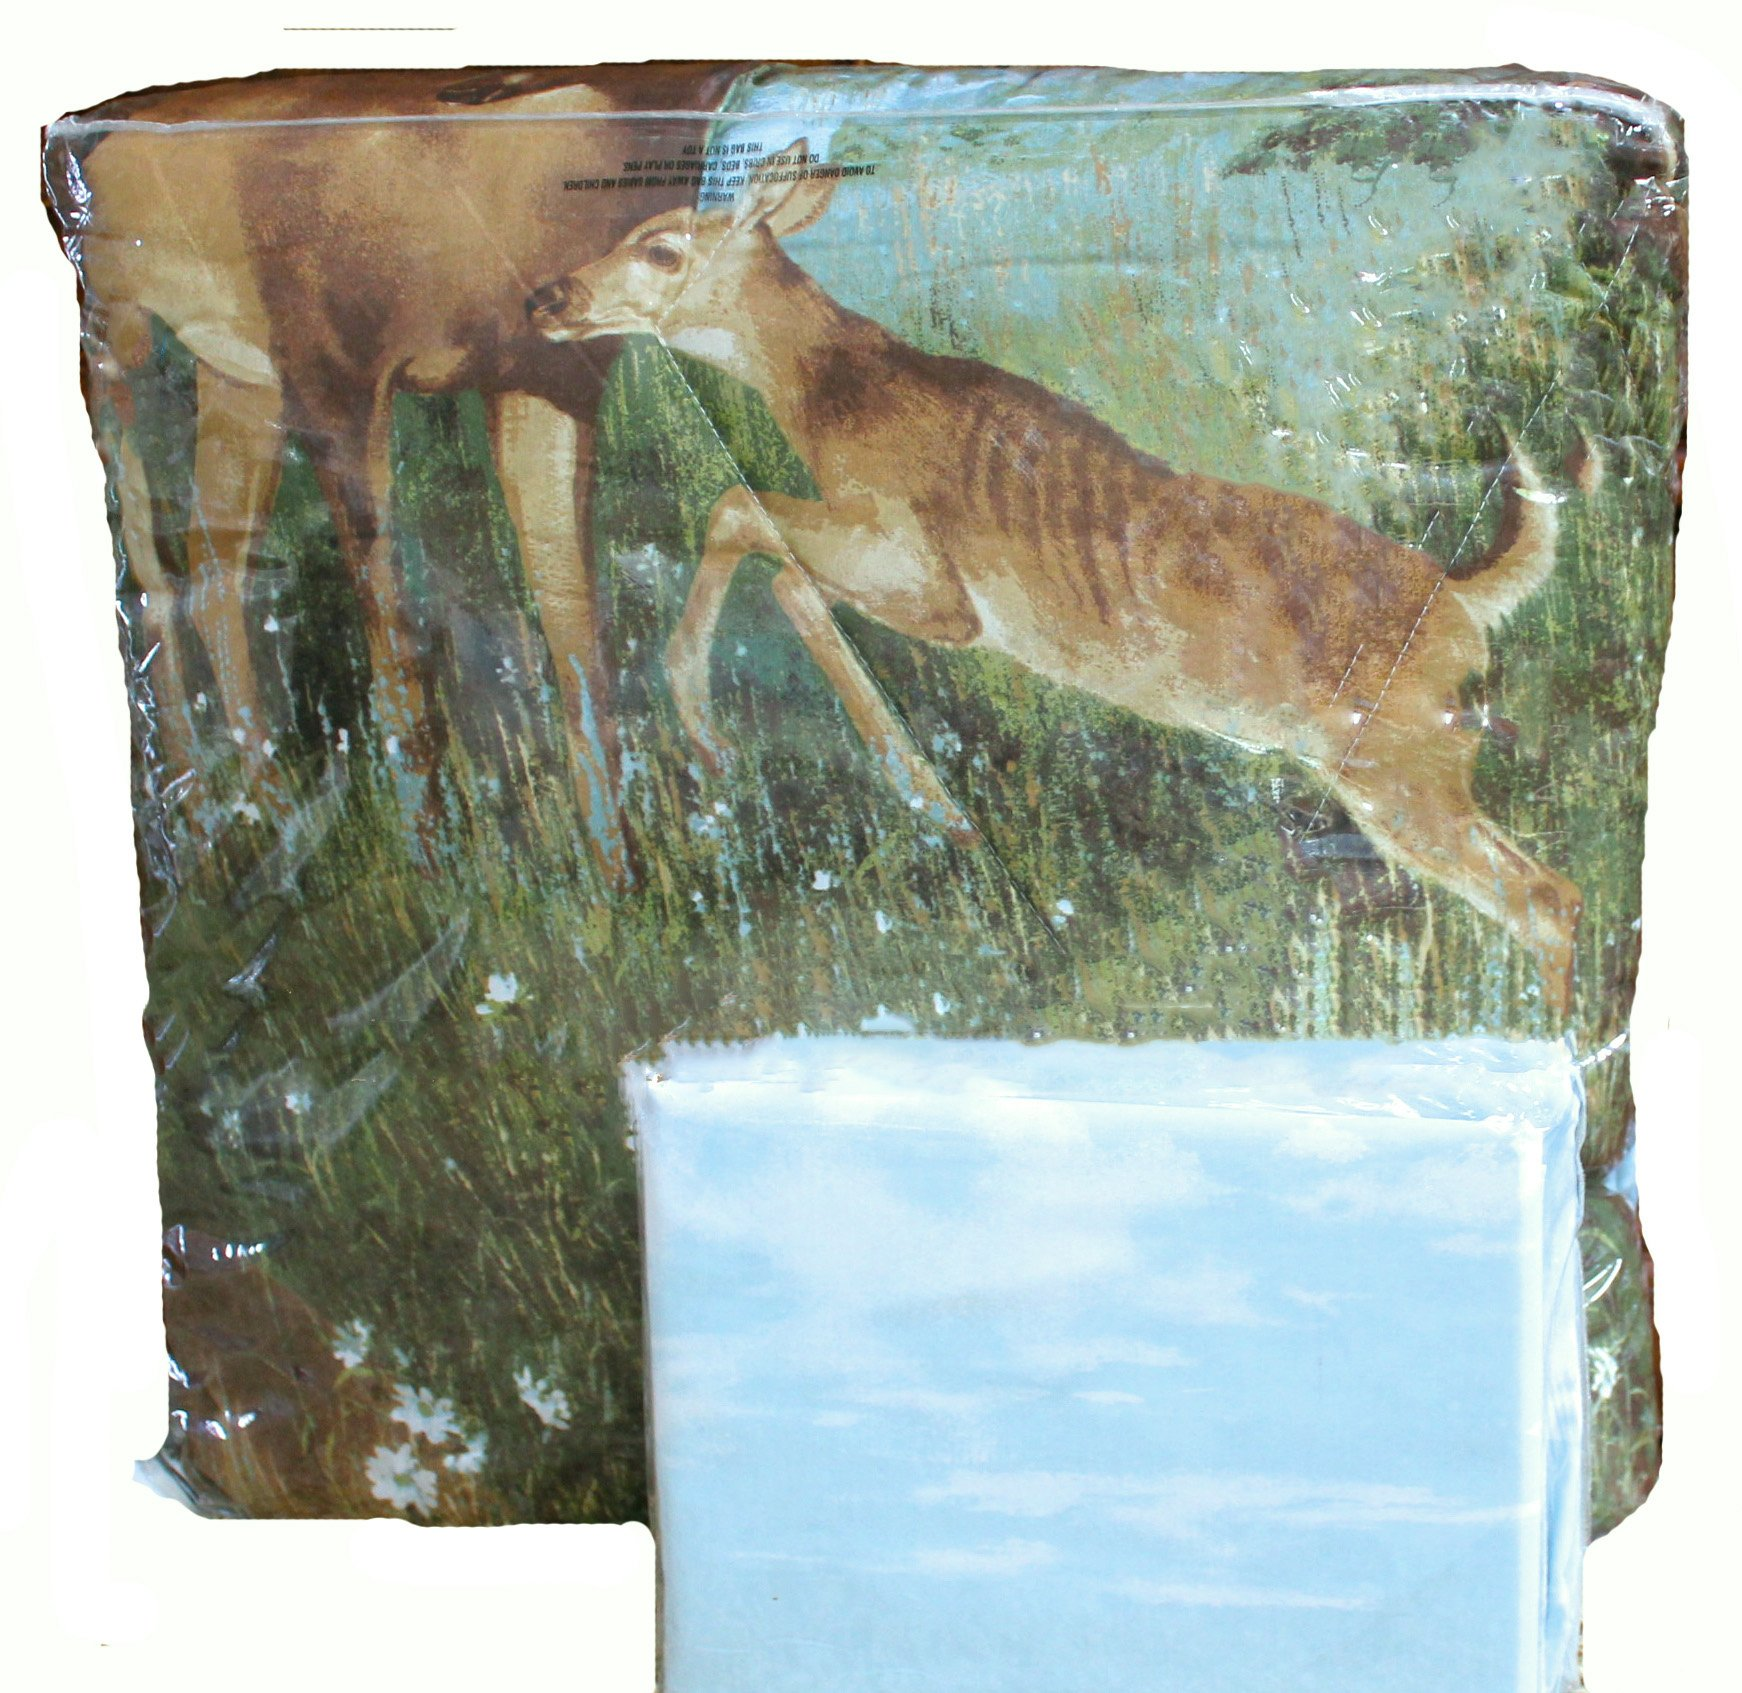 8pc Whitetail Deer Trophy Buck Comforter, Sheets, Pillow Shams & Bedskirt Set (Bed in a Bag) (8pc Full Size)